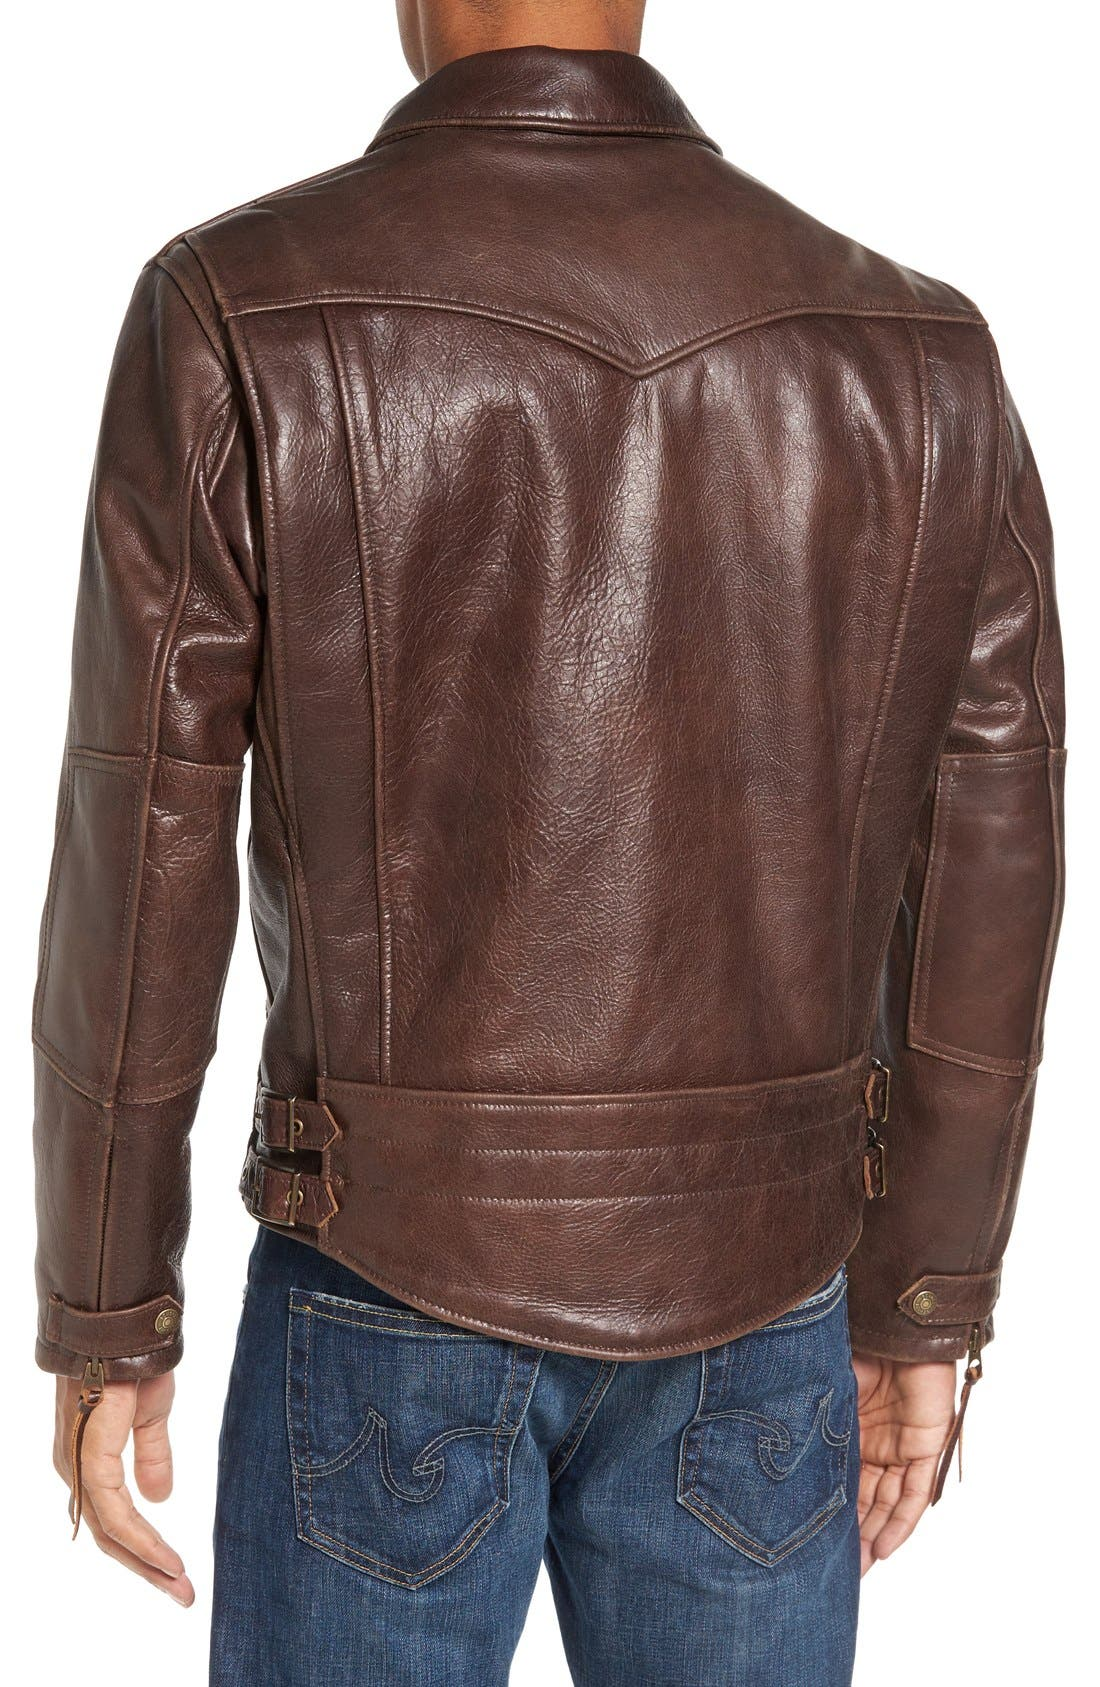 Antique Vintage Style Leather Moto Jacket,                             Alternate thumbnail 2, color,                             200